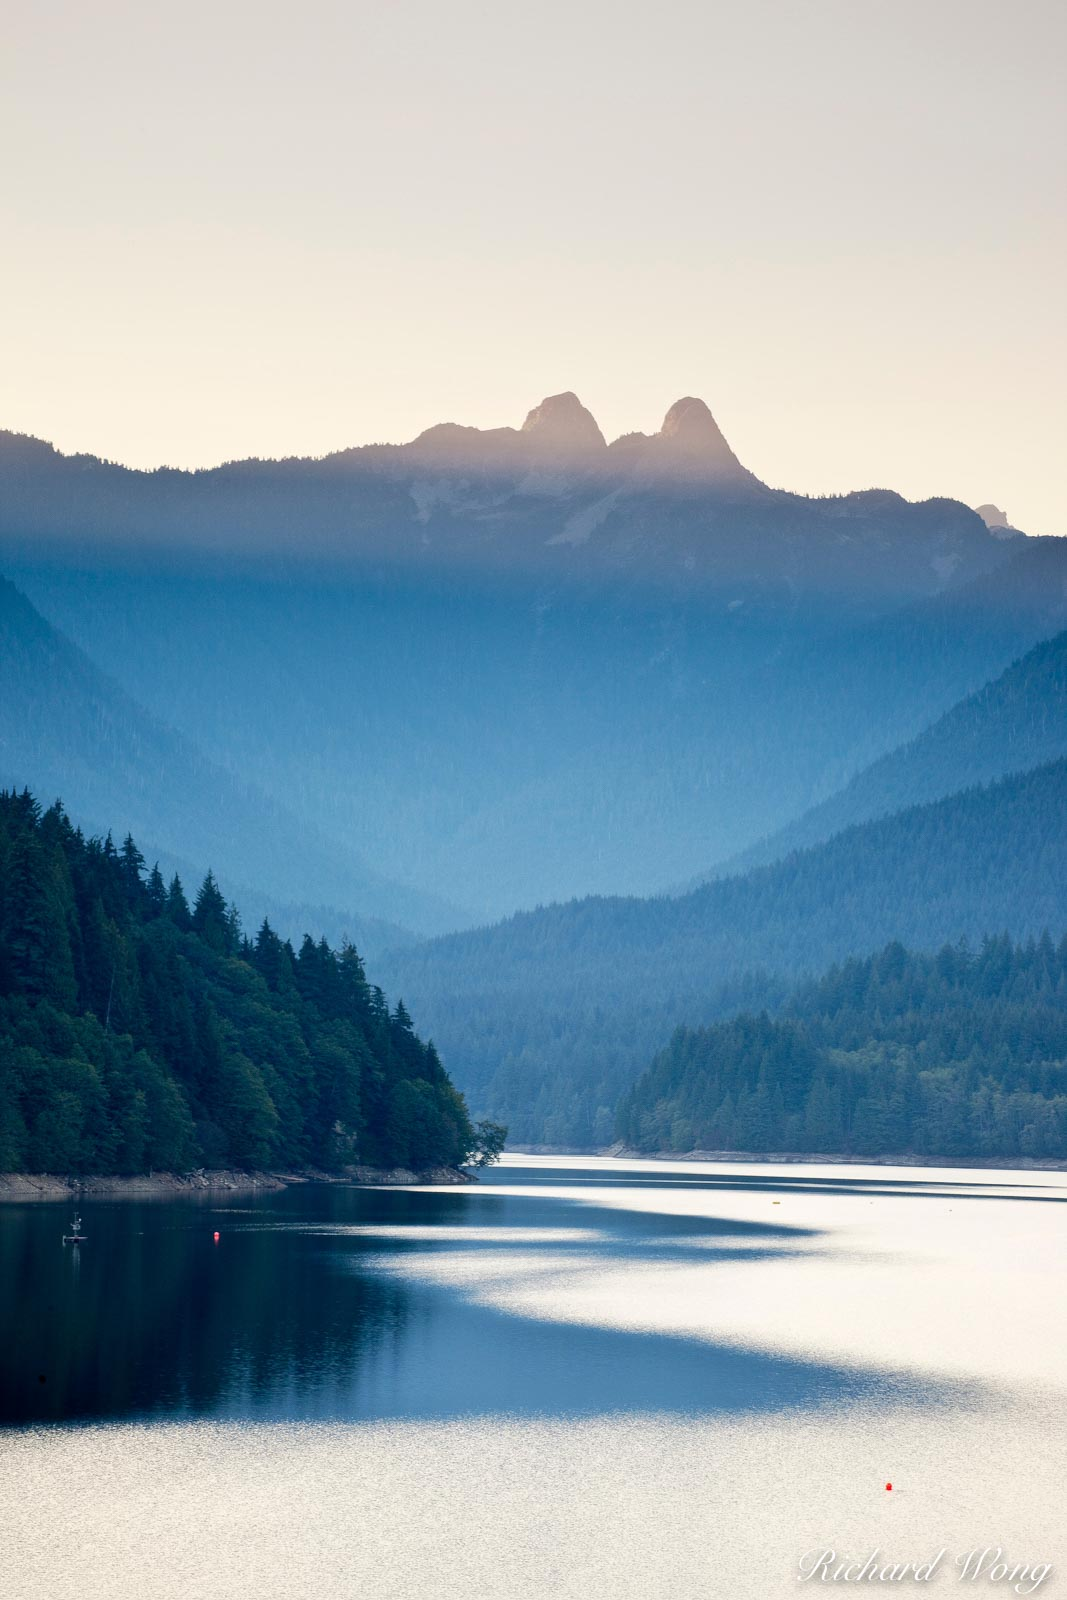 The Lions Forming a Backdrop over Capilano Lake - Capilano River Regional Park, North Vancouver, B.C.